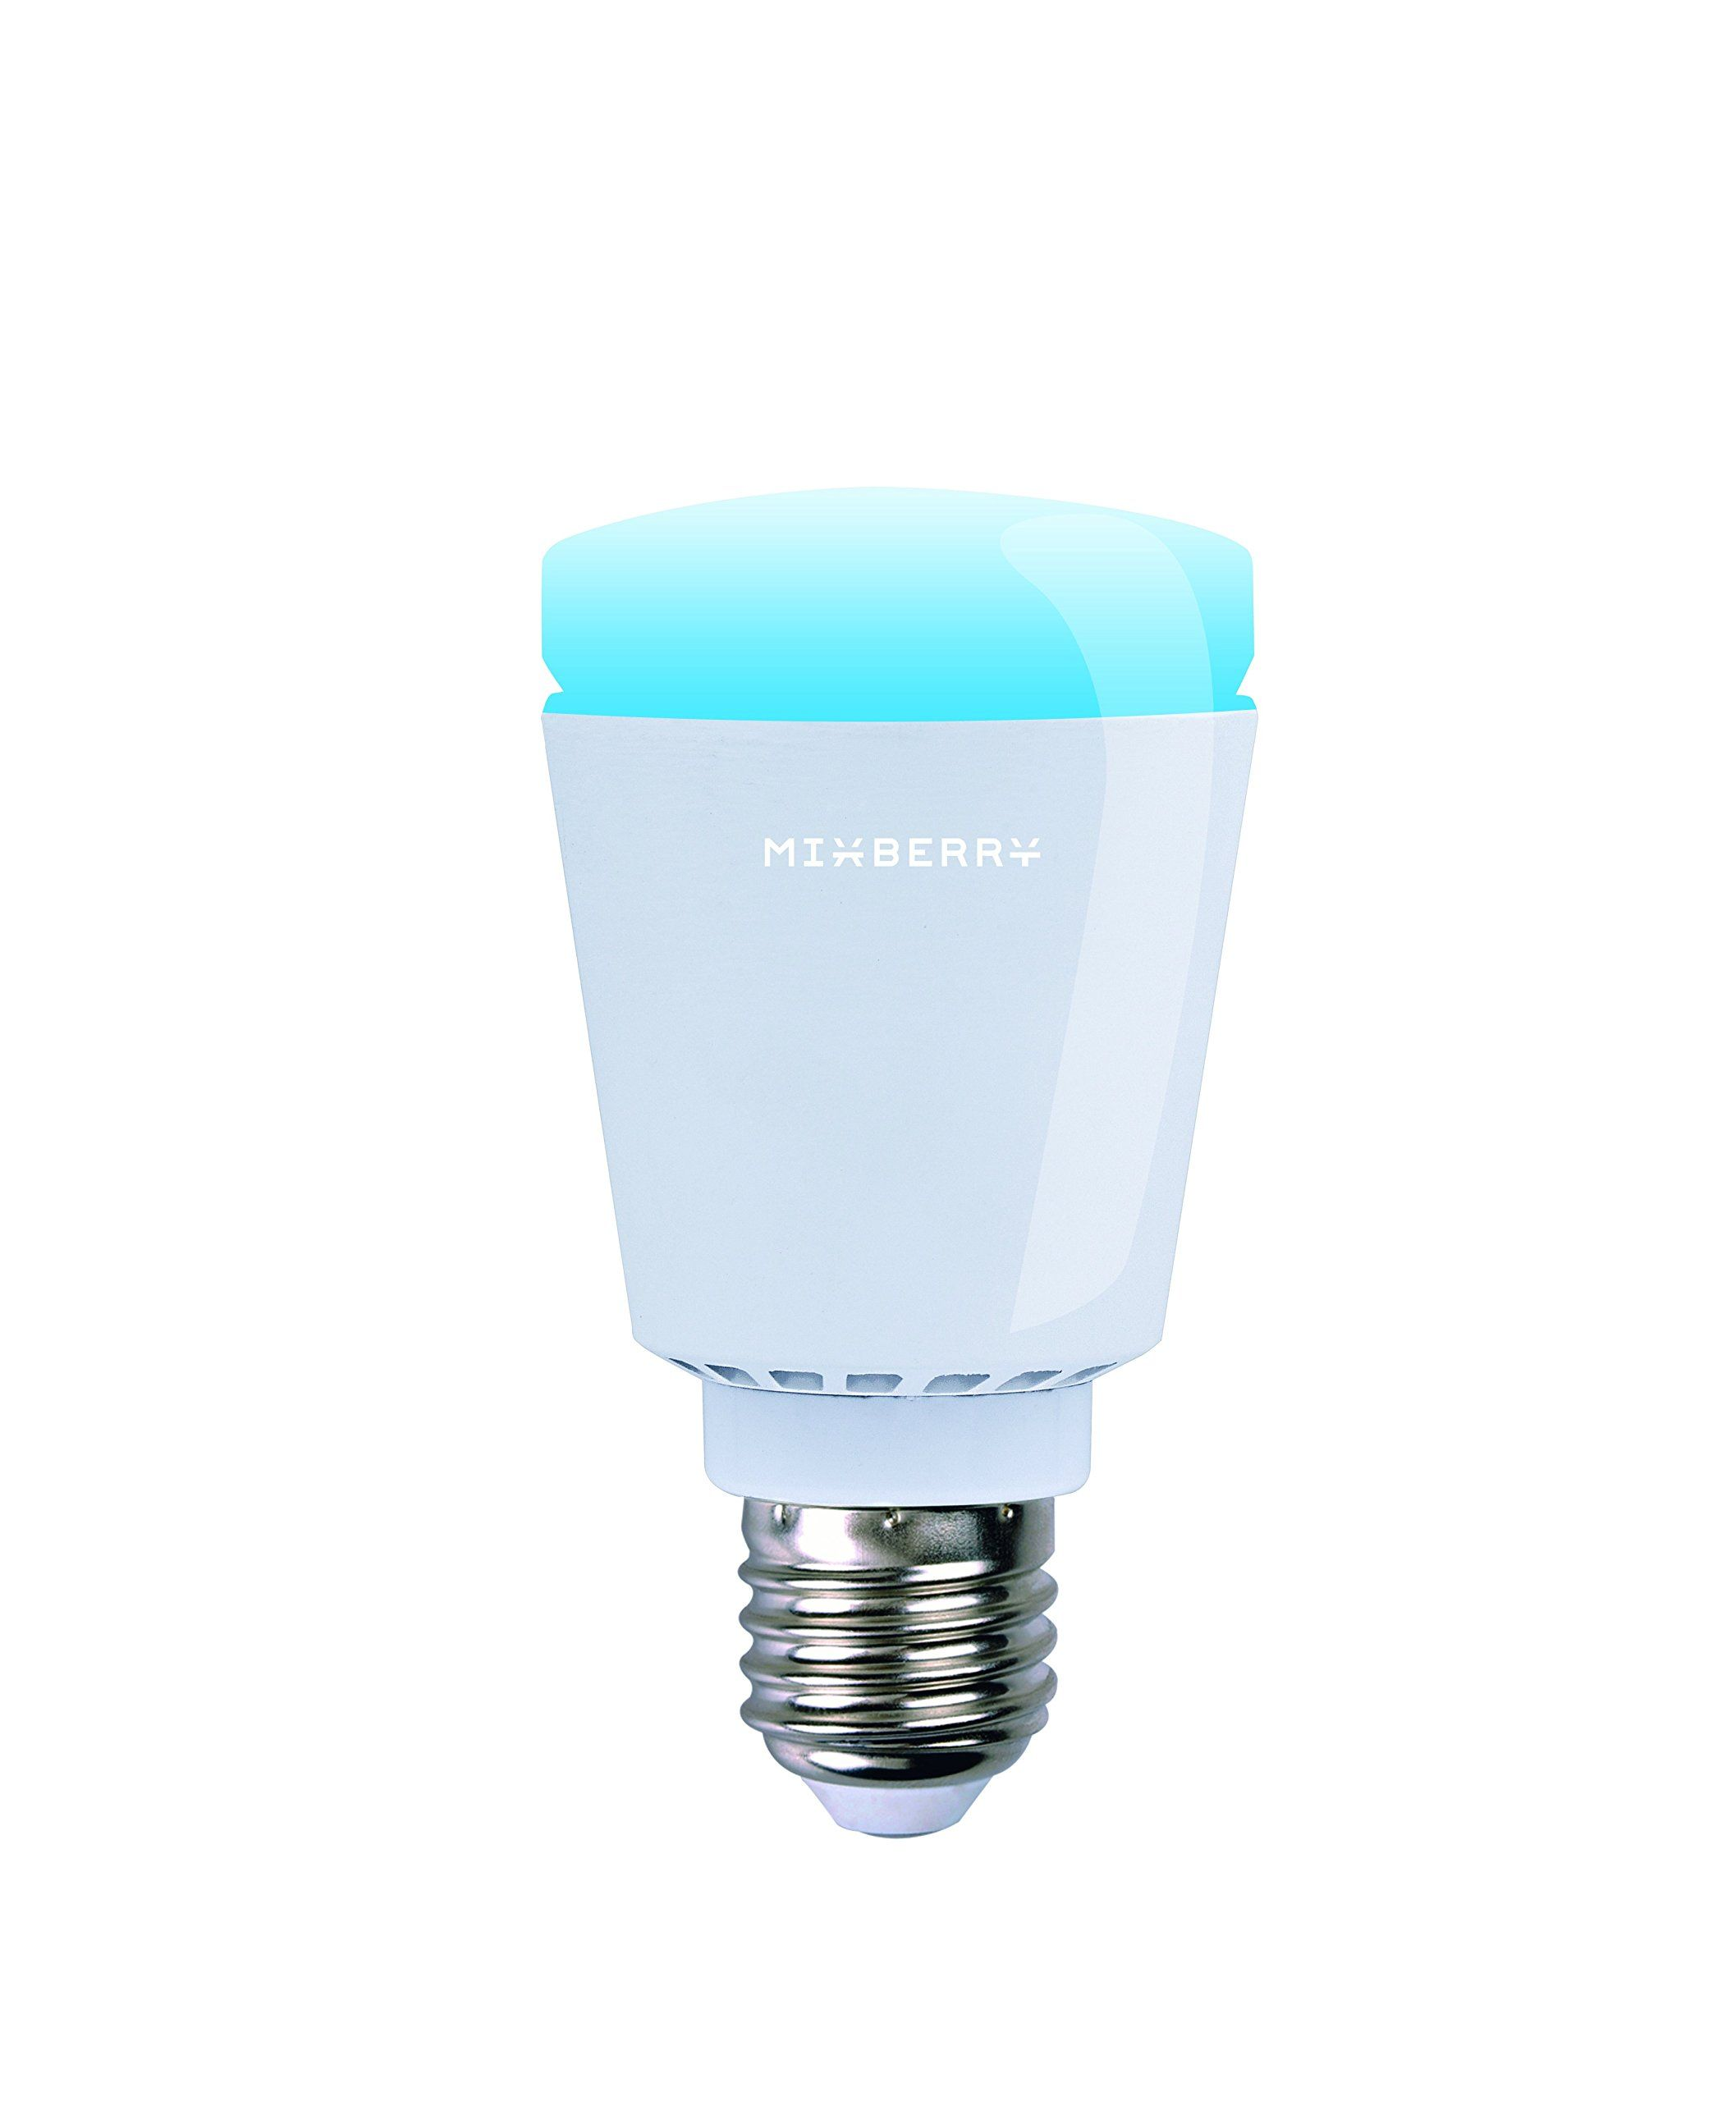 Mixberry Smart Led Light Bulb E27 Medium Base 16 Million Dimmable Colors Features Sleep Wake And Party Modes Compatible Your Light Bulb Led Light Bulb Bulb